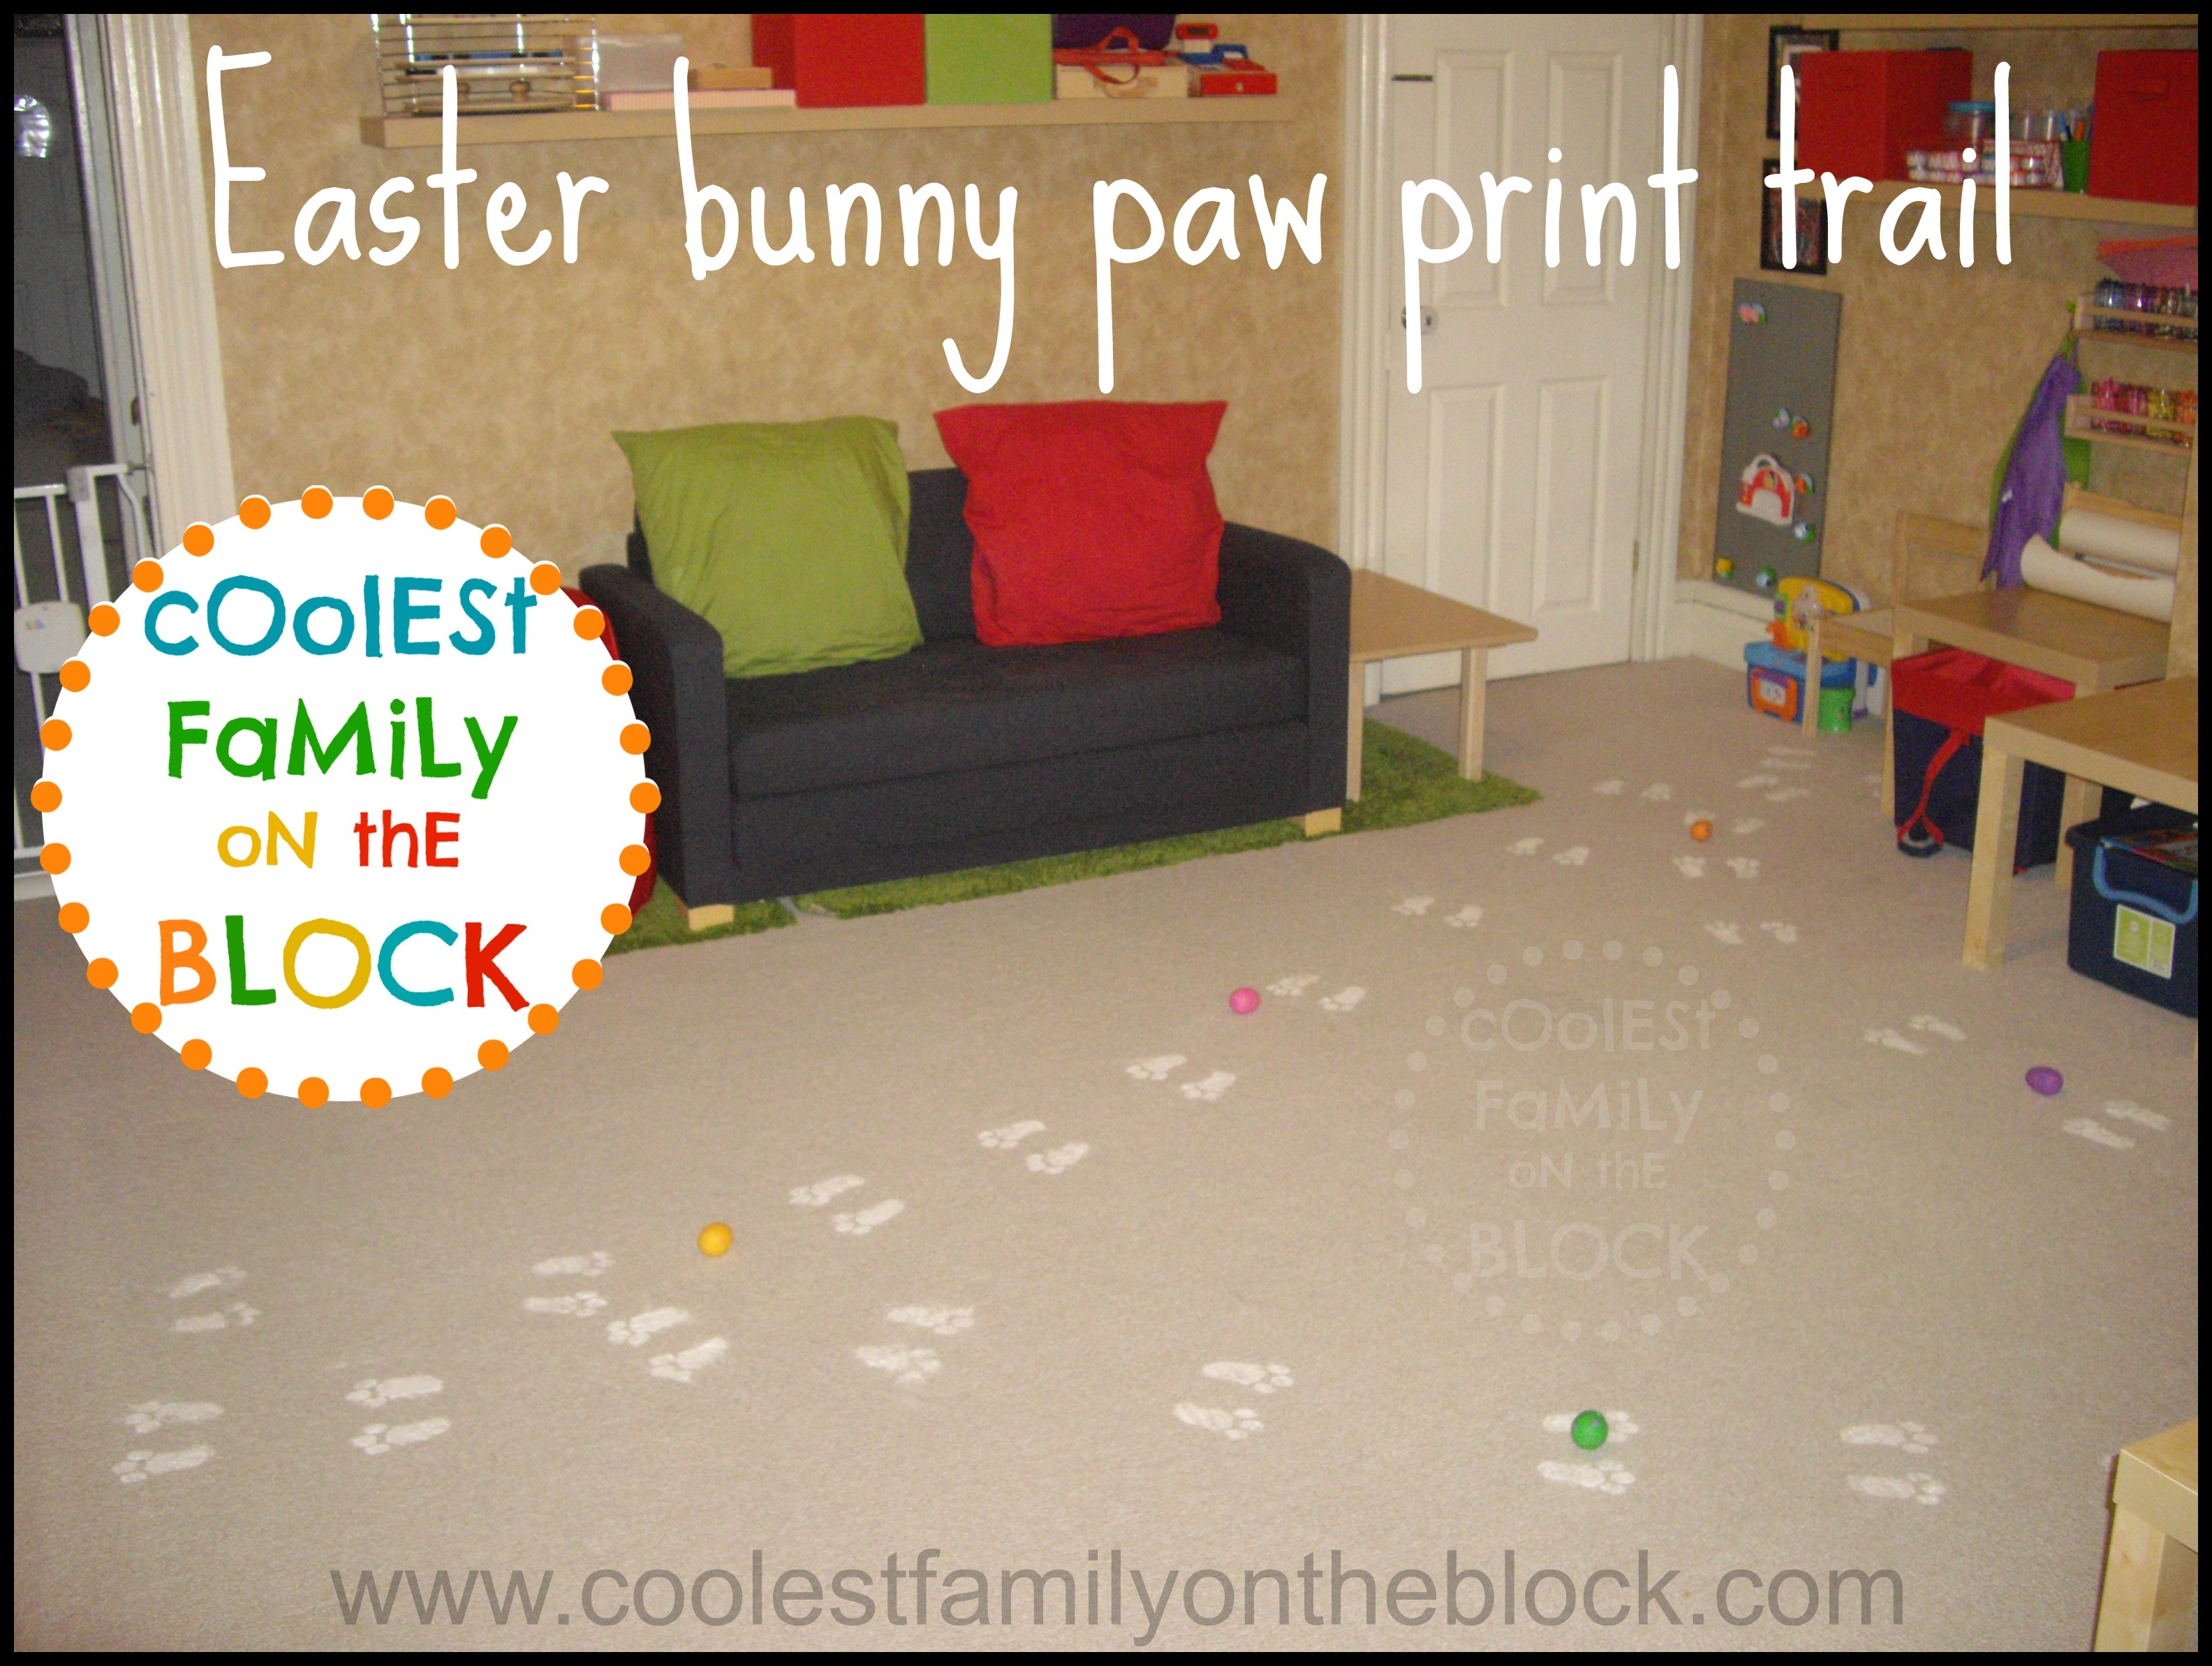 Easter Bunny Footprints Printable Diy easter bunny paw print